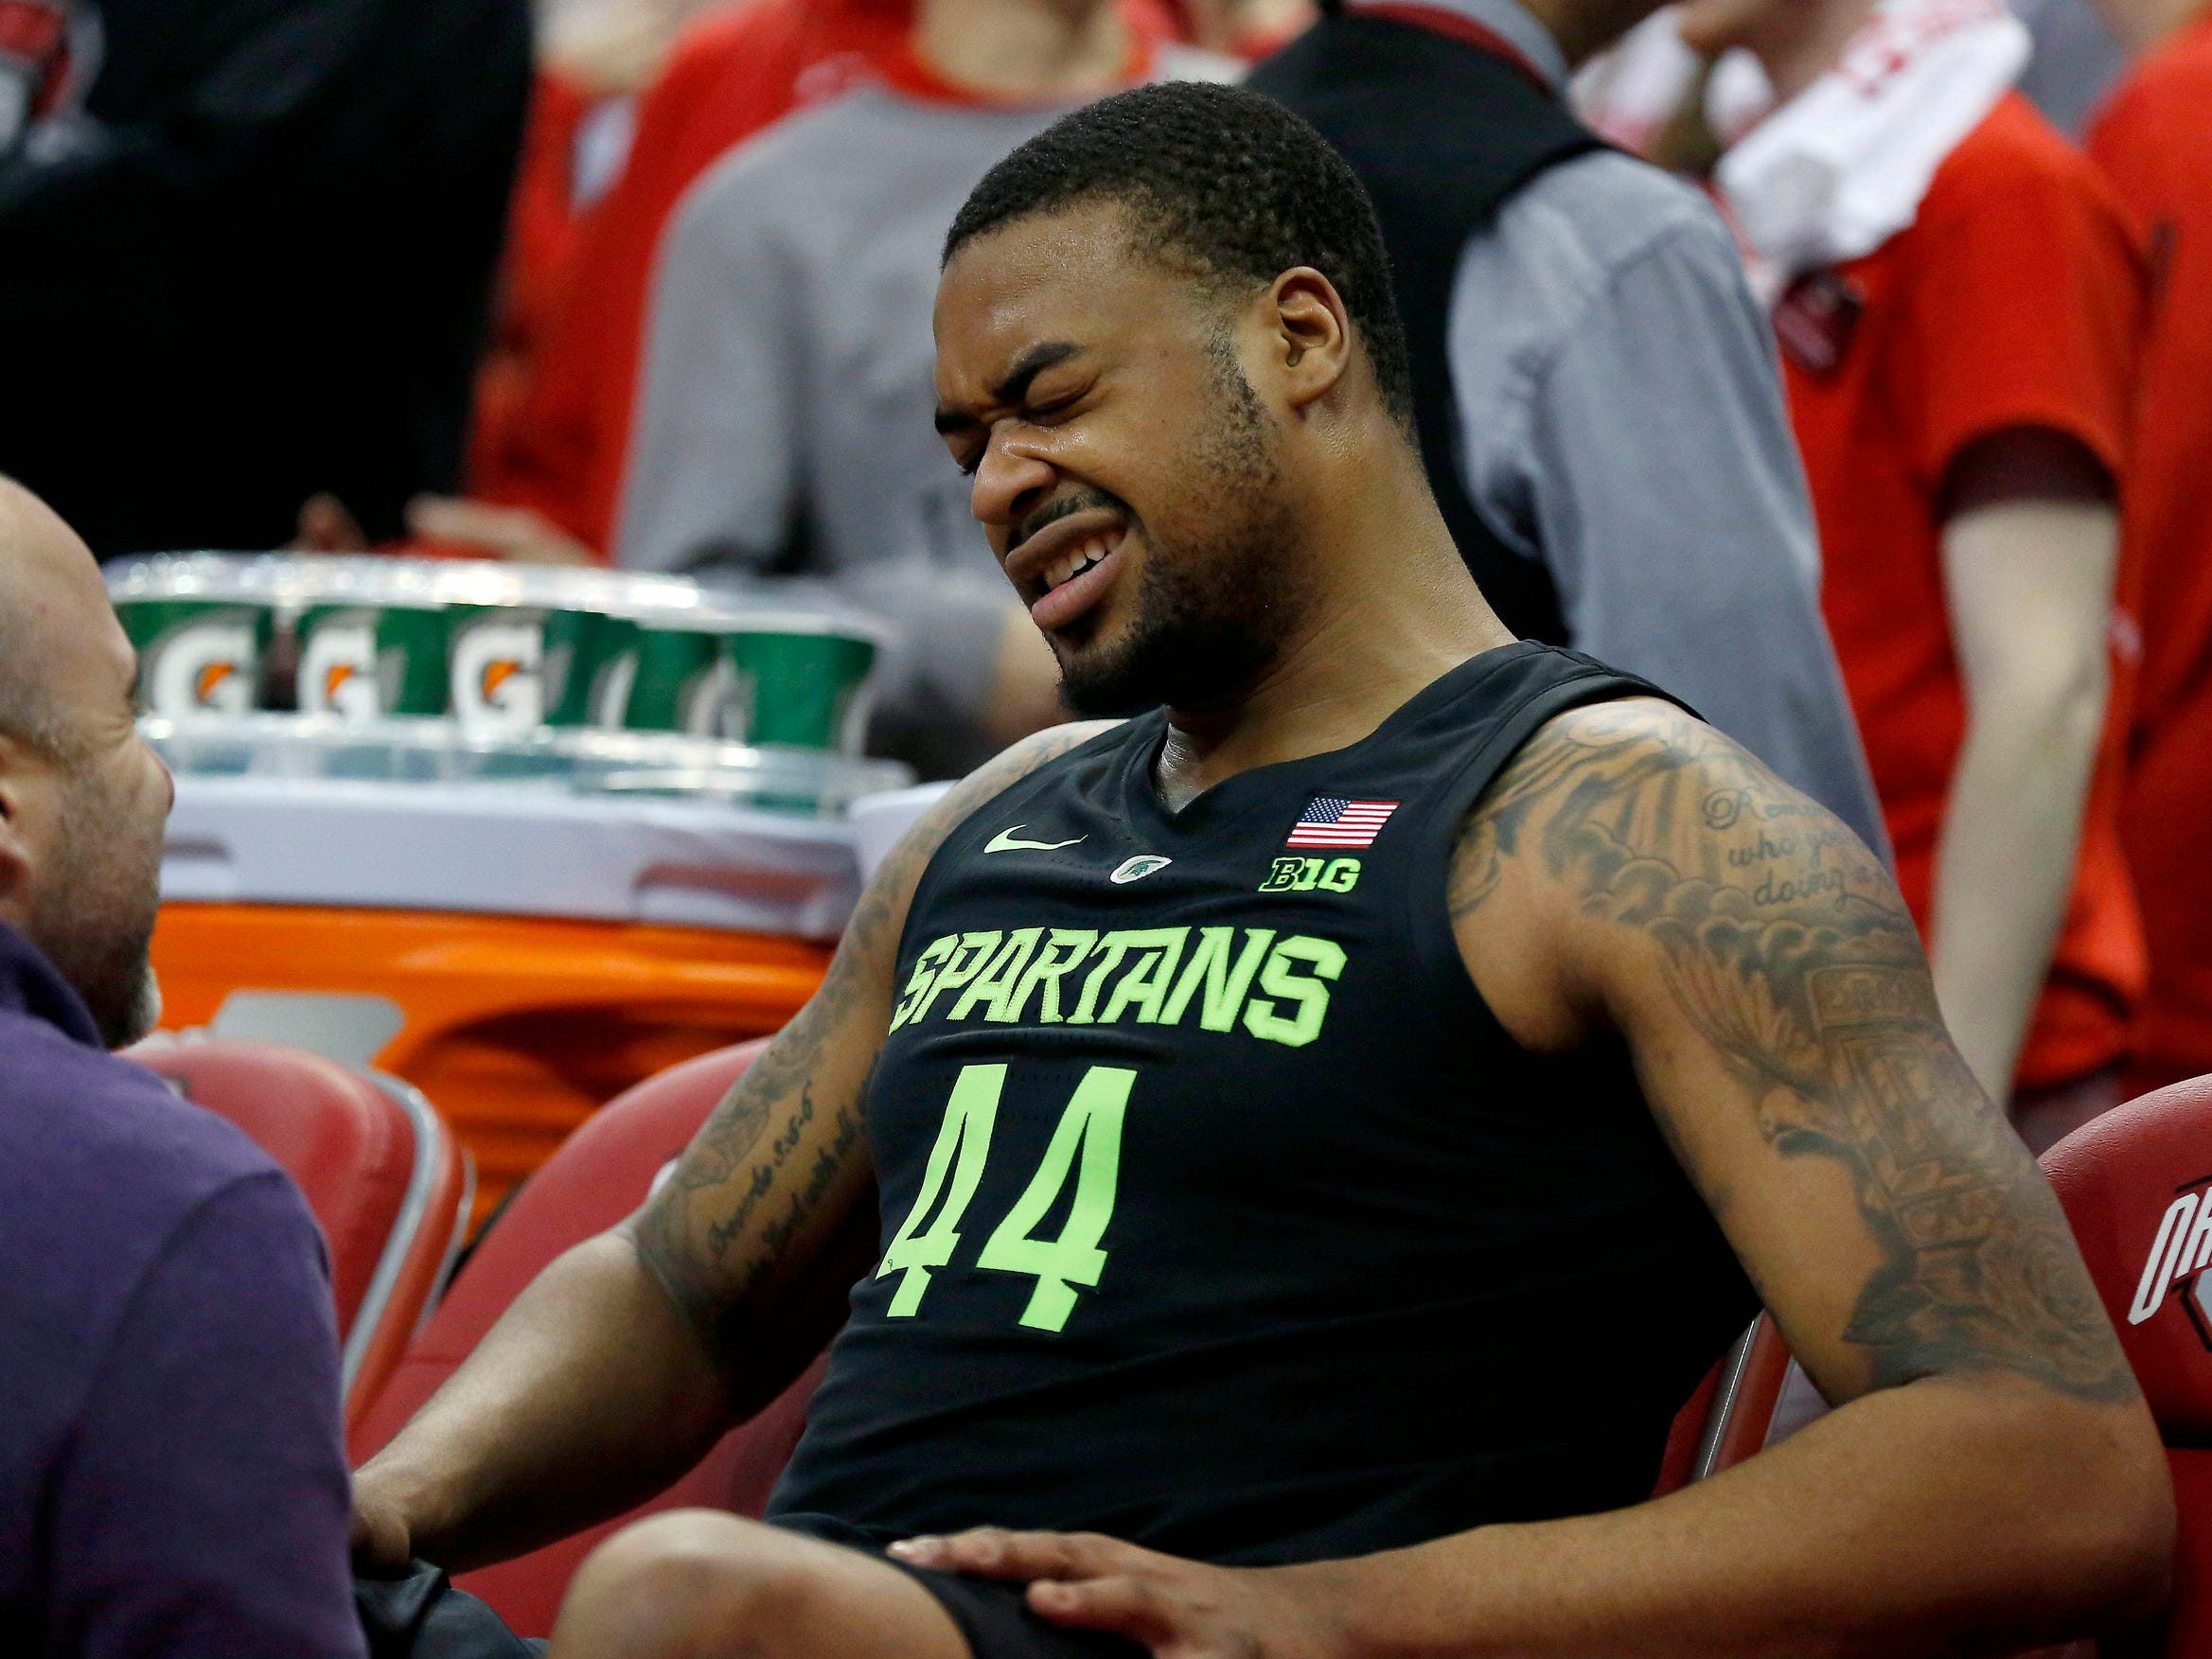 Michigan State forward Nick Ward sits on the bench in pain during the second half against Ohio State, Jan. 5, 2019 at Value City Arena in Columbus, Ohio.